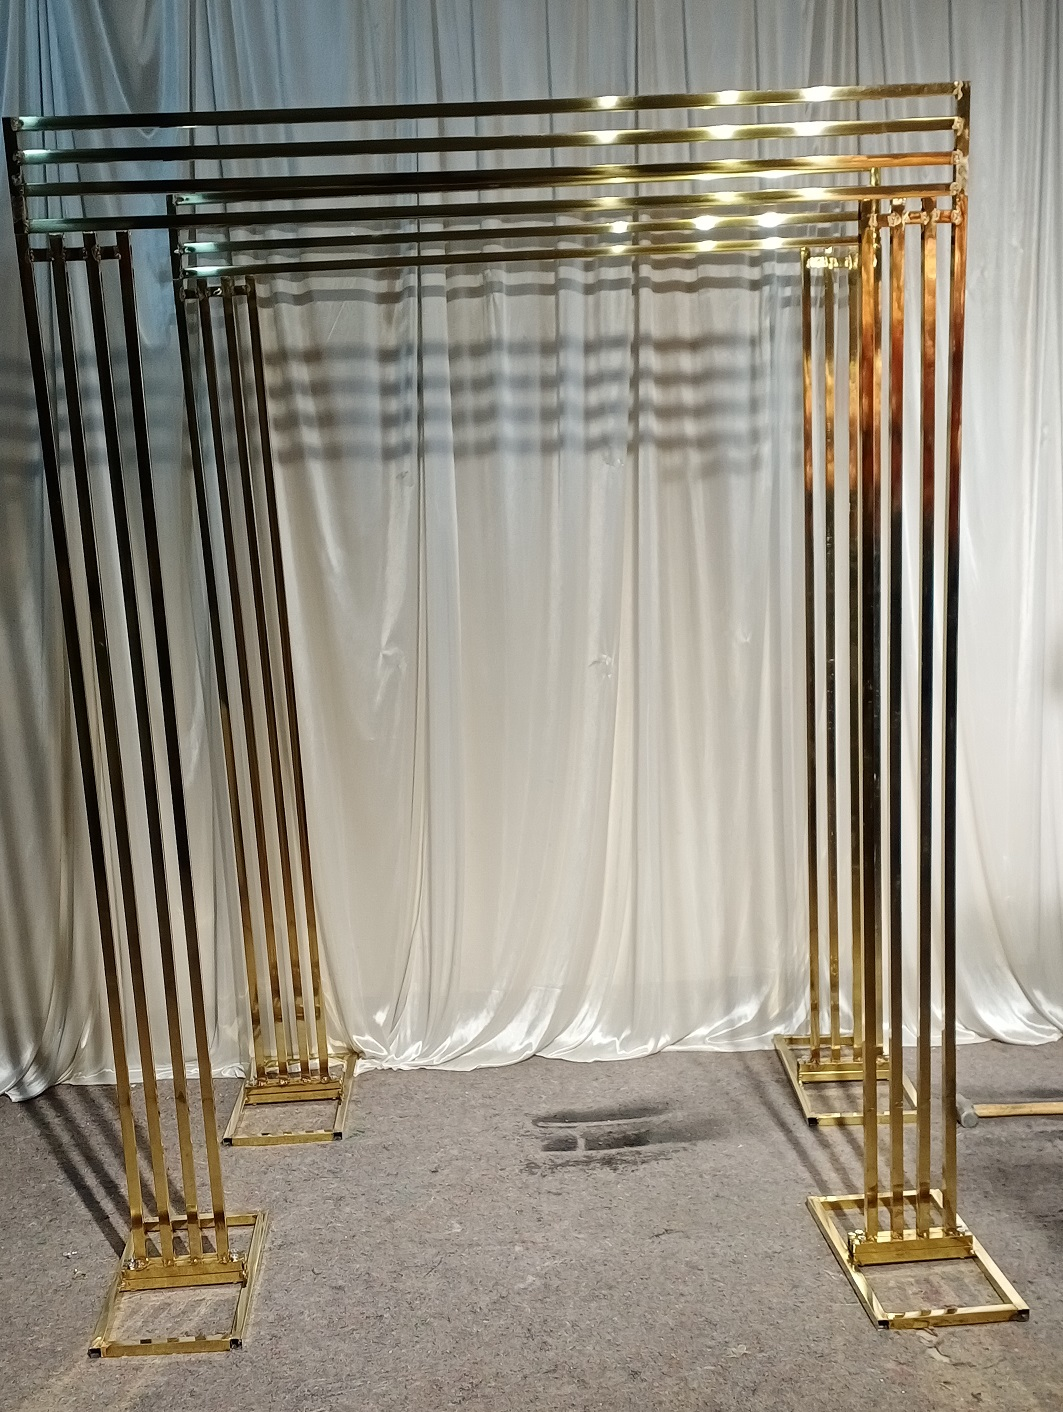 Flower Stand Gold Cylindrical Metal Corridor Shining Base  Away Arch Wedding Frame Gold  Plated Backdrop Arch Metal Gold Walk